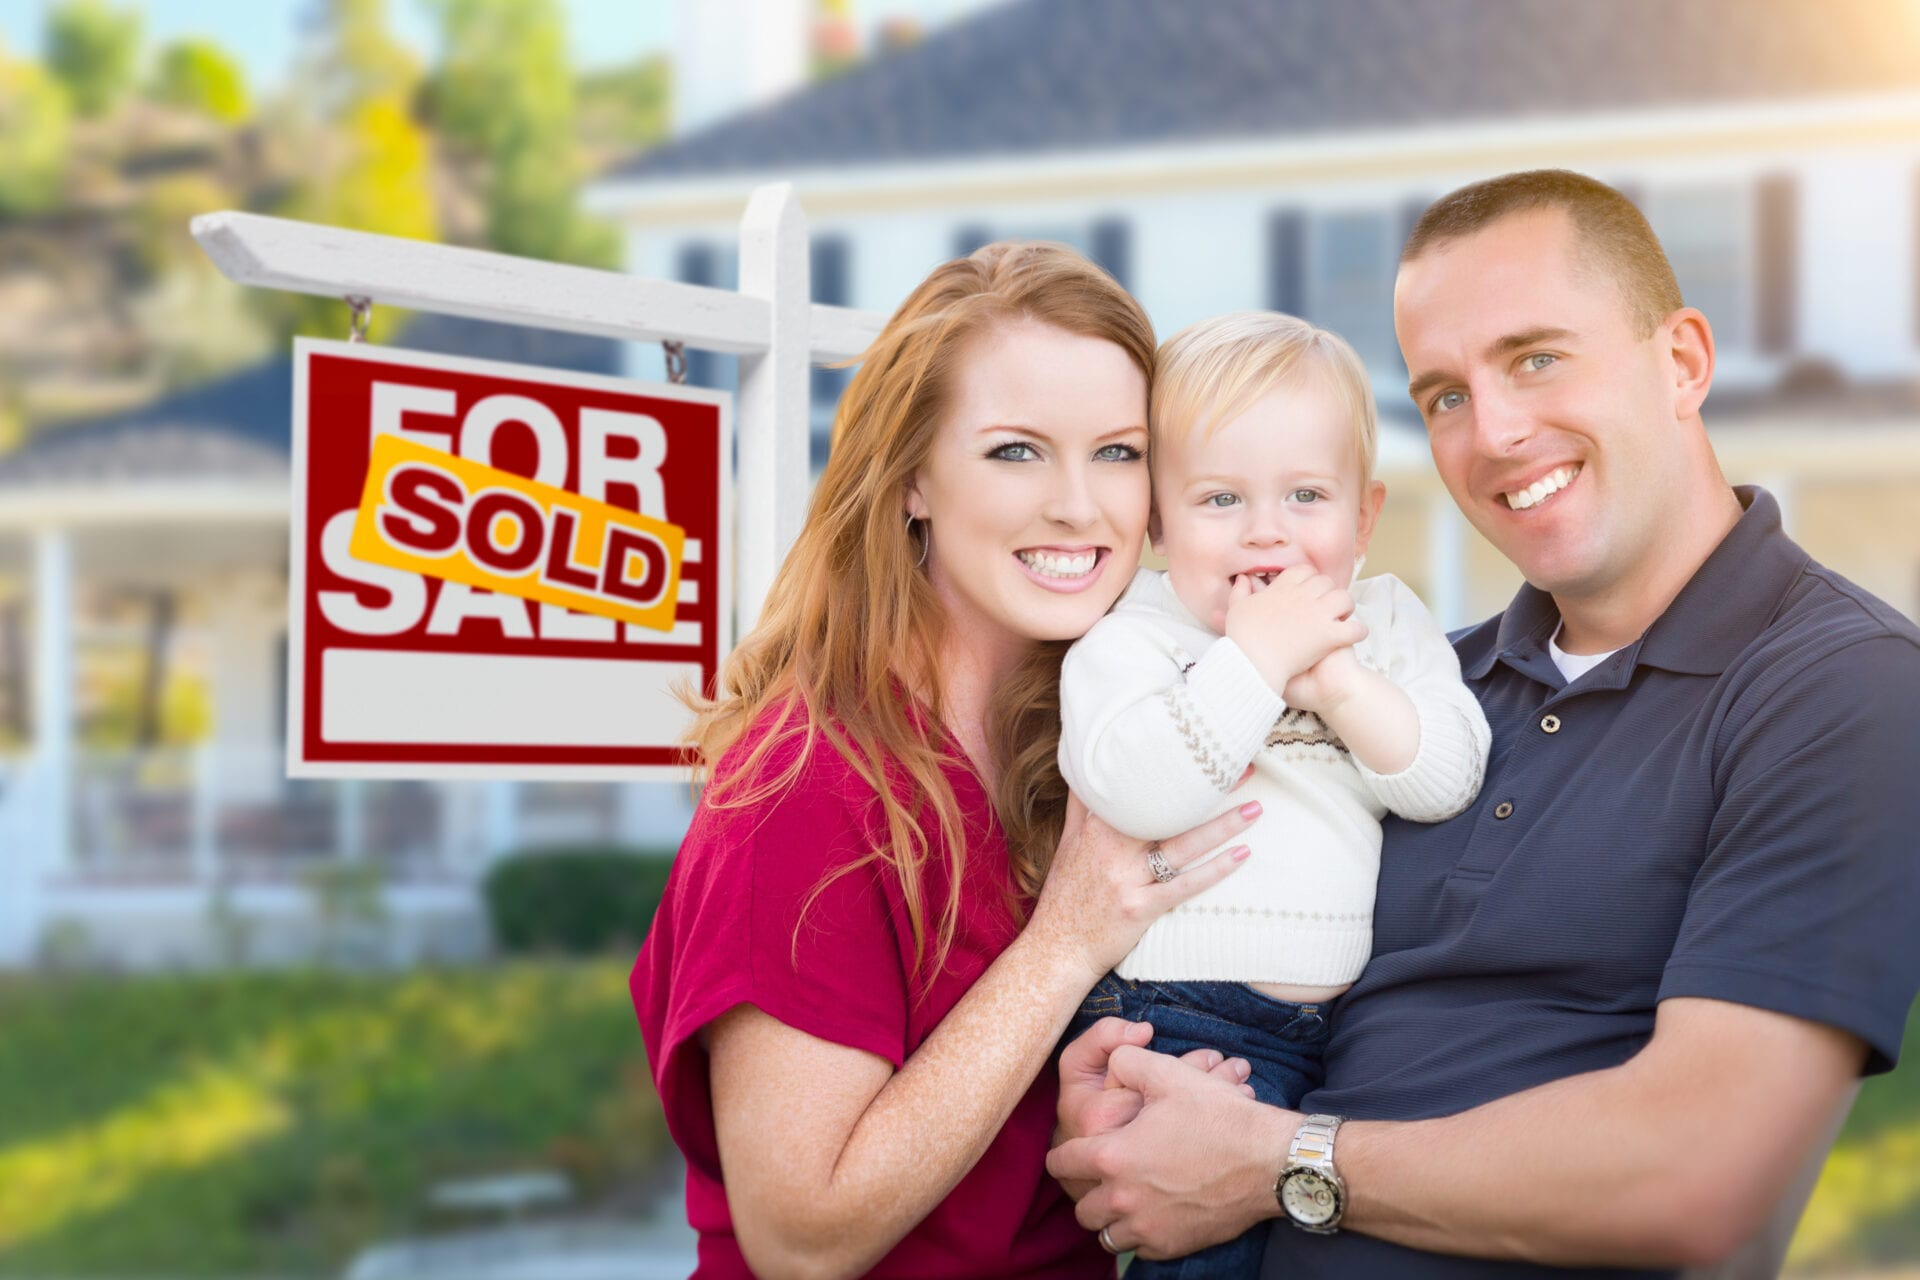 About home loans